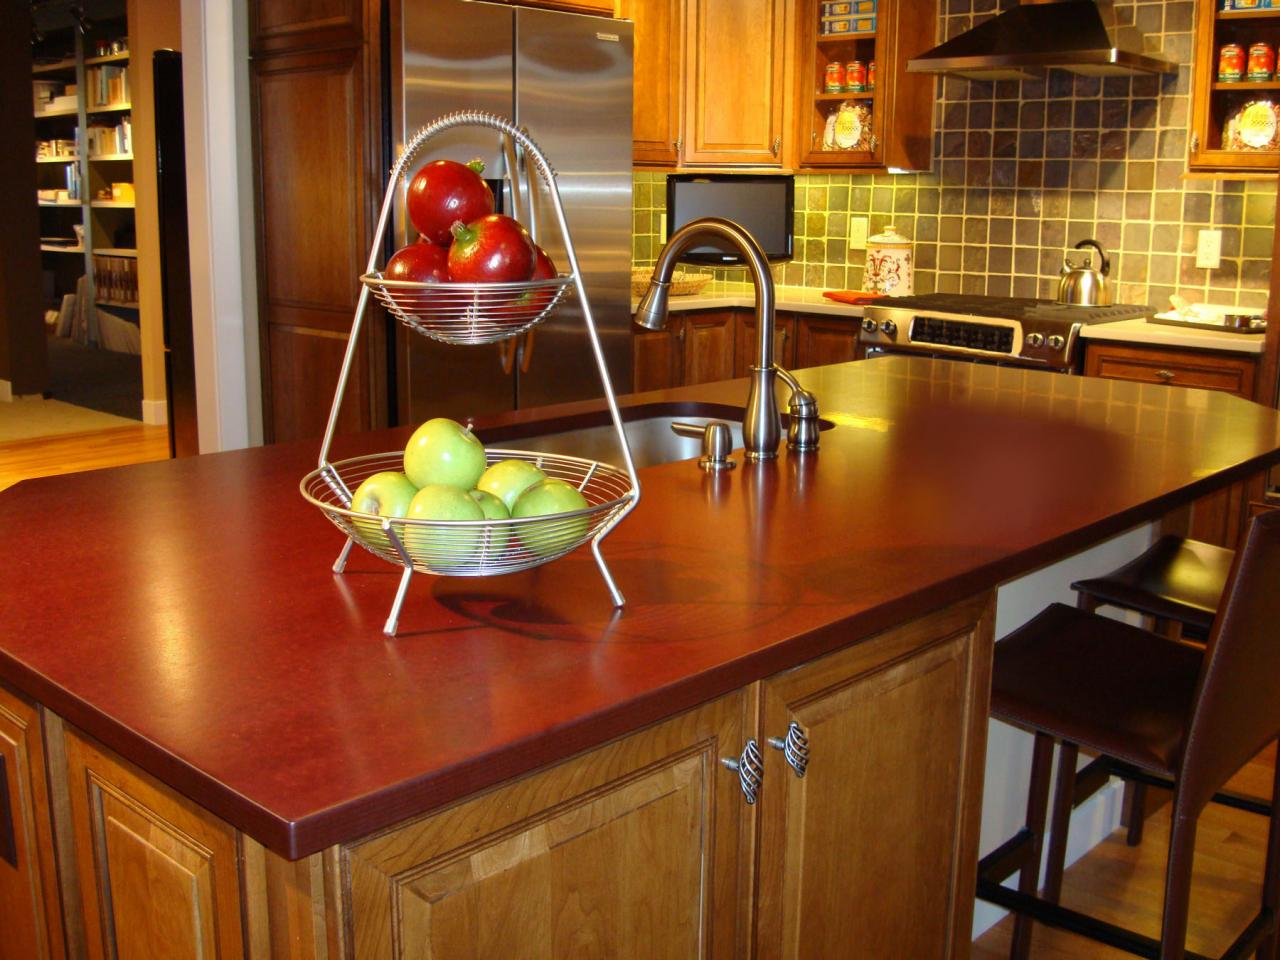 Stunning Wooden Cabinet Using Lush Countertop Plus Stainless Steel Faucet and Sink